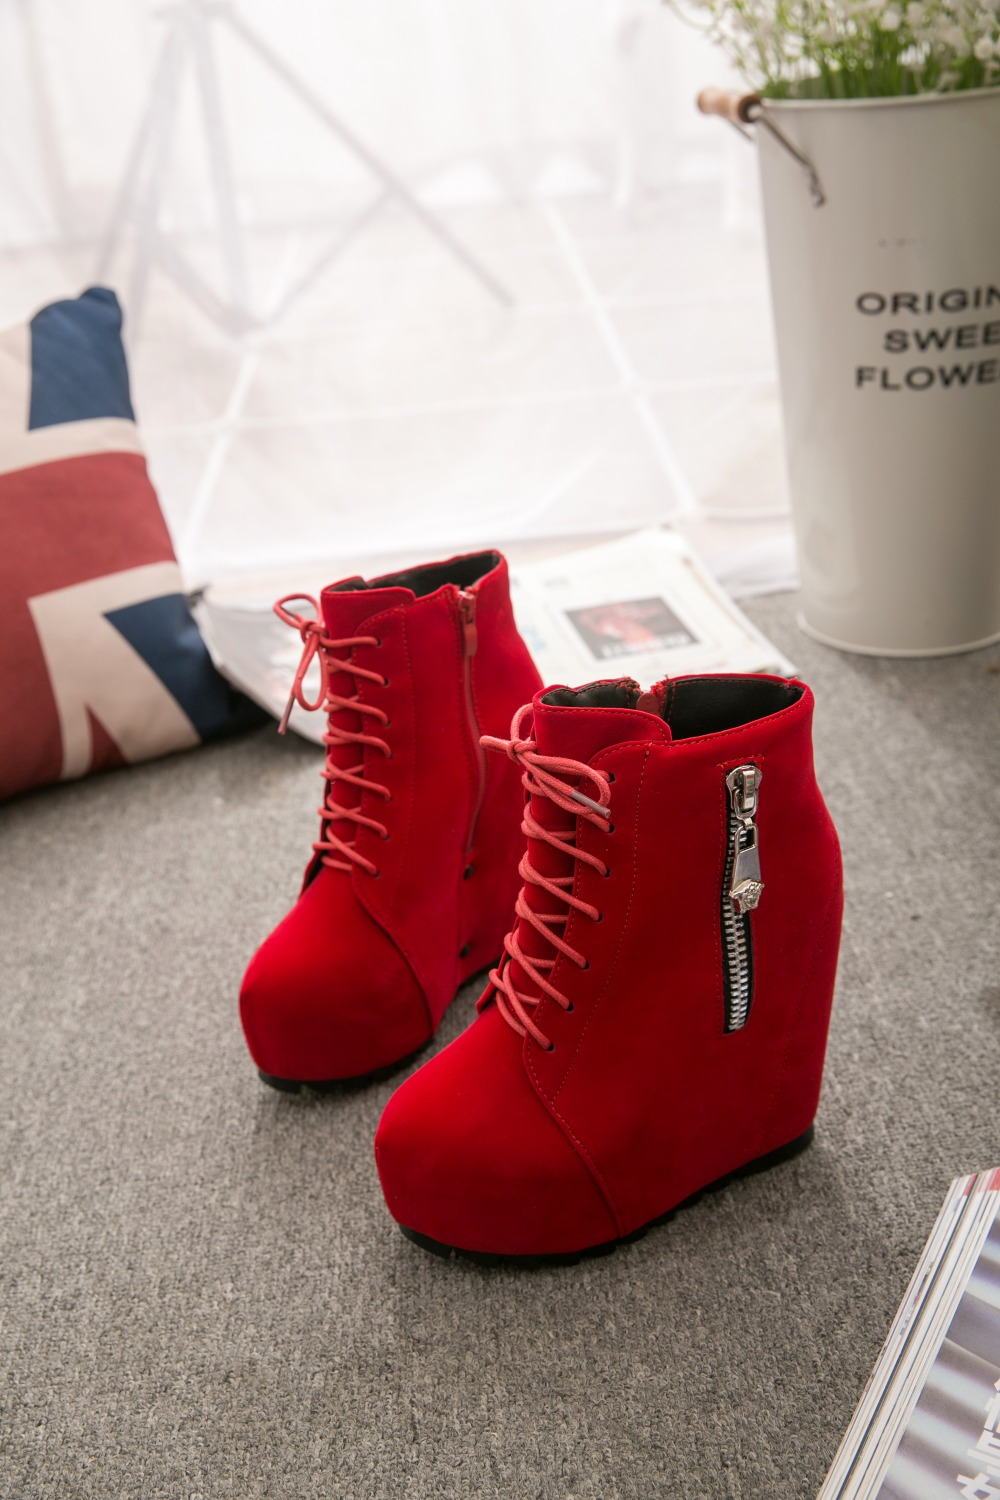 Punk woman gothic Lace Up Wedge High Heel platform Creeper round toe Zip Side Ankle Boots shoes For Women Red Black